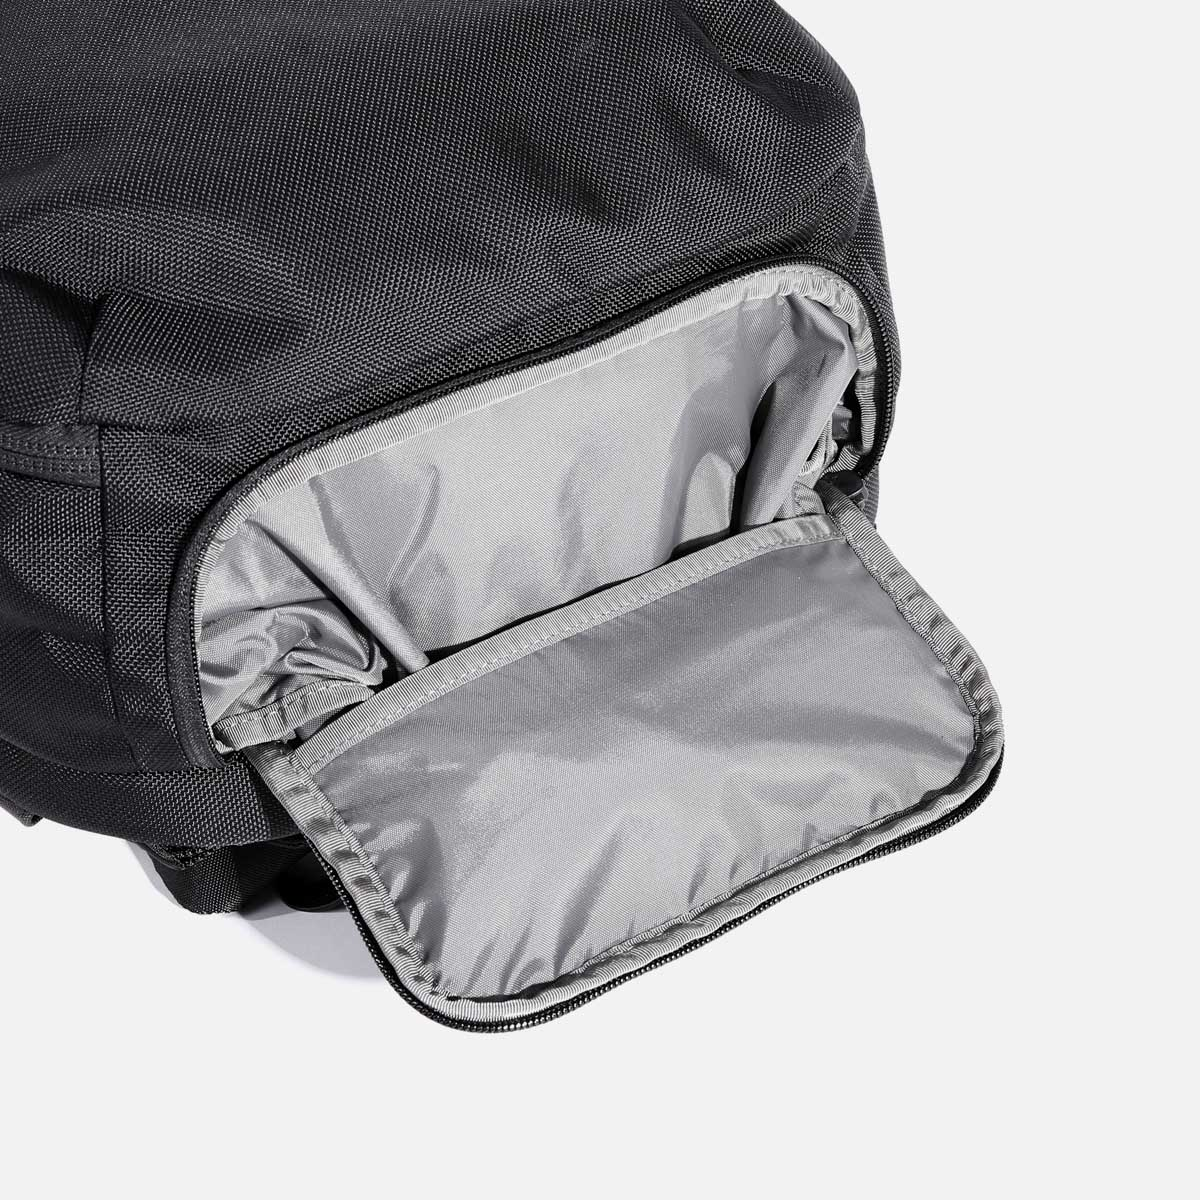 Stowable shoe pocket keeps excess fabric contained.